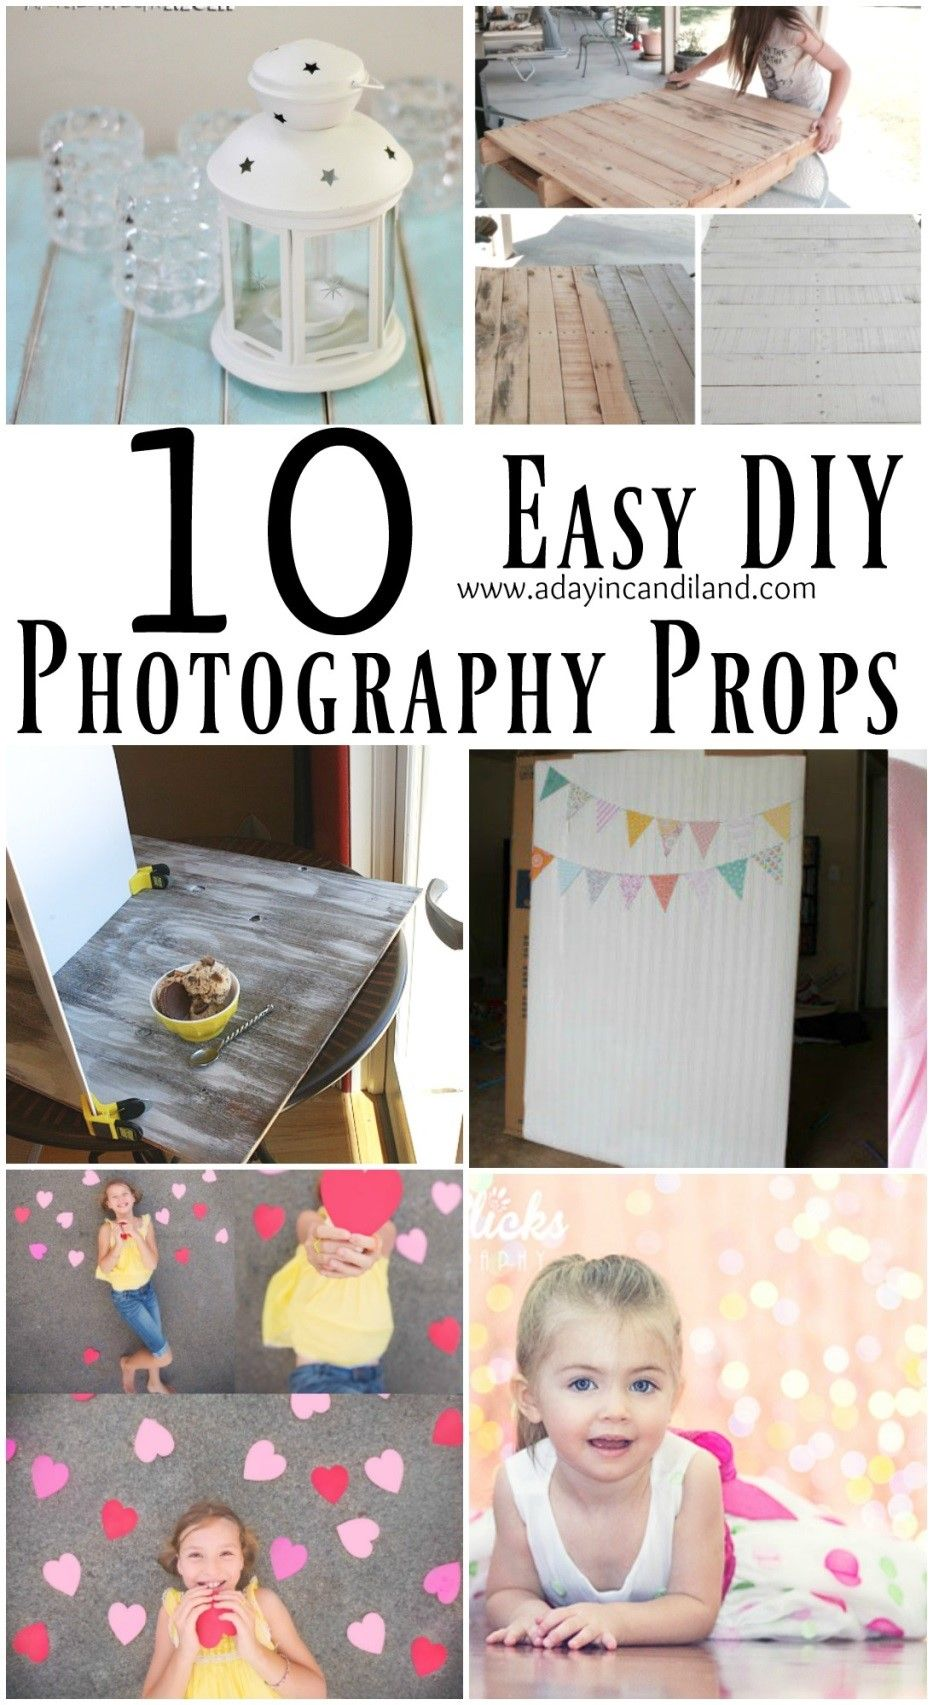 Props for photography shoots 10 easy diy ideas pinterest 10 easy diy photography props that you can make in a day photos diy photography pictures backdrops do it yourself creative crafts fun solutioingenieria Gallery